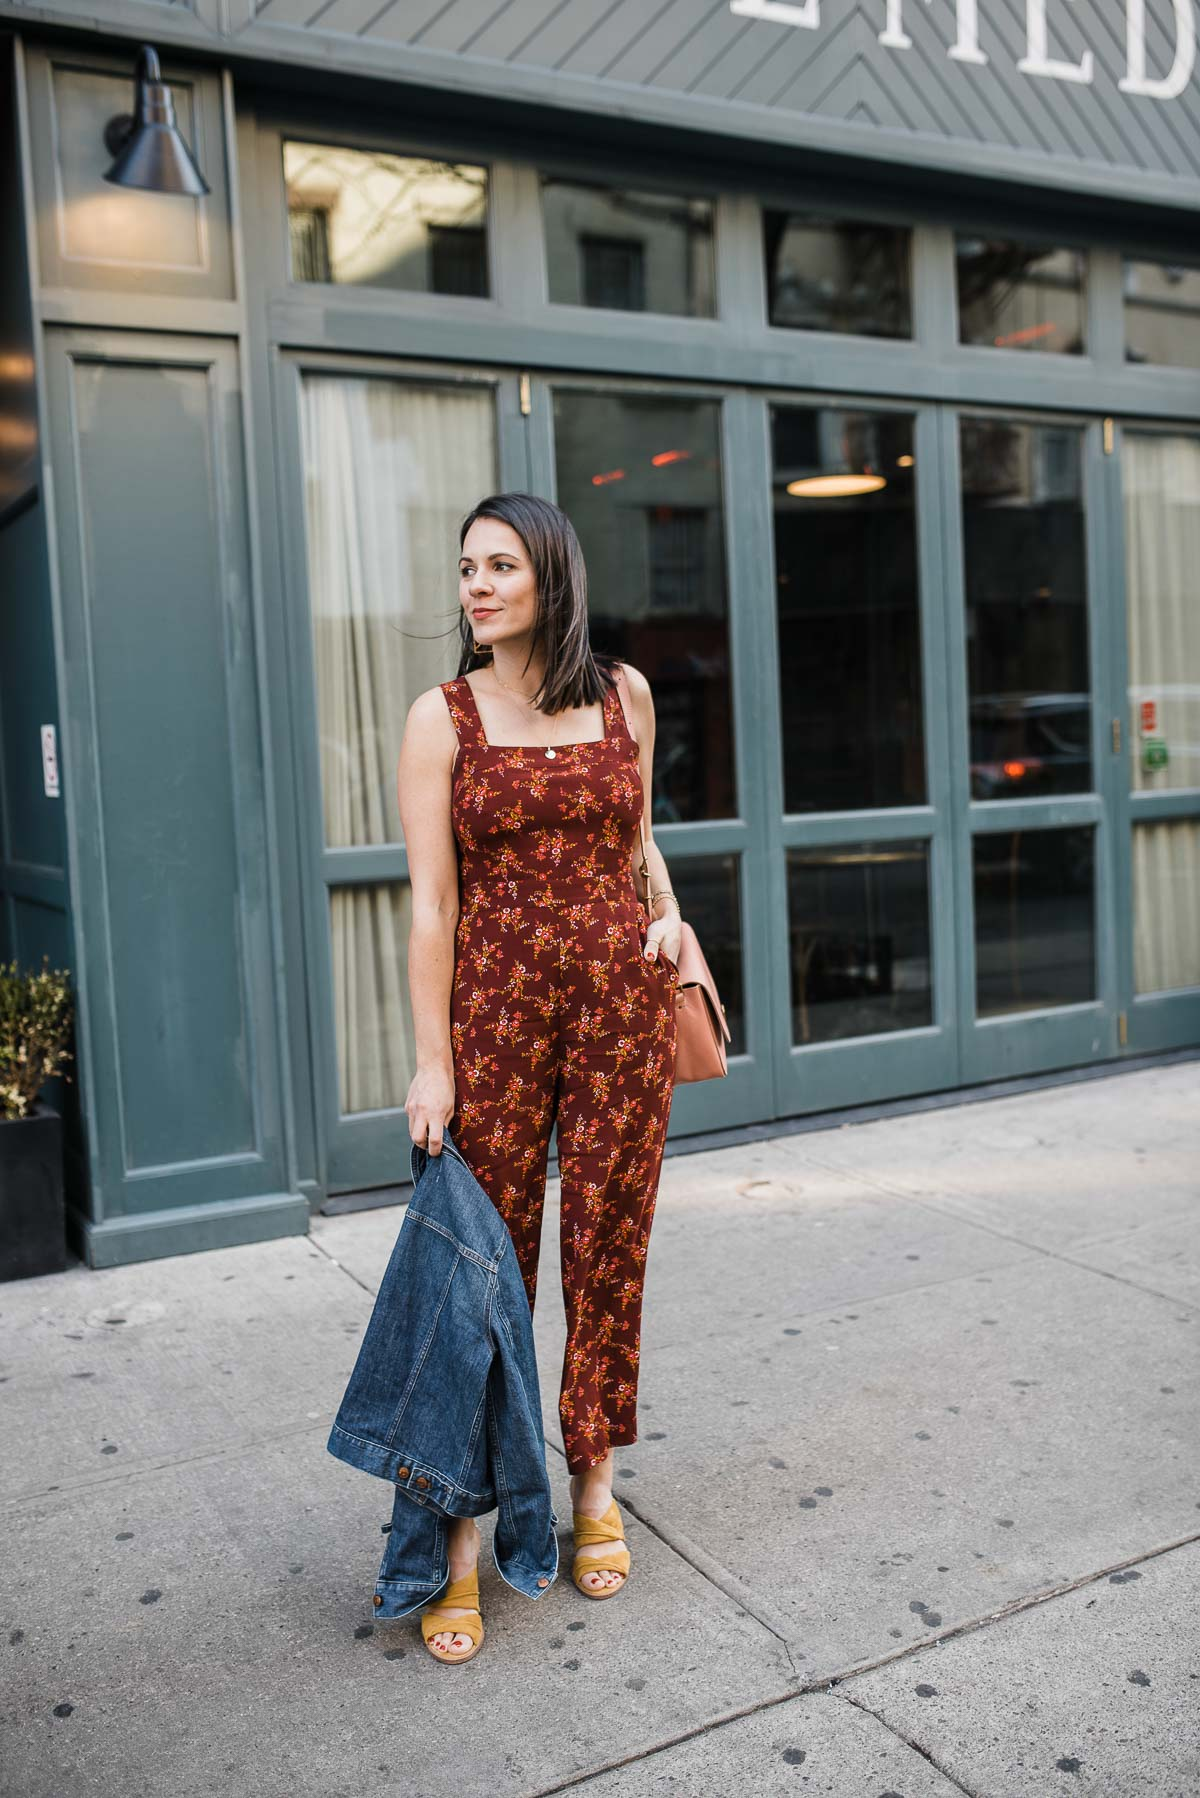 A Madewell Floral Jumpsuit To Wear In NYC | My Style Vita